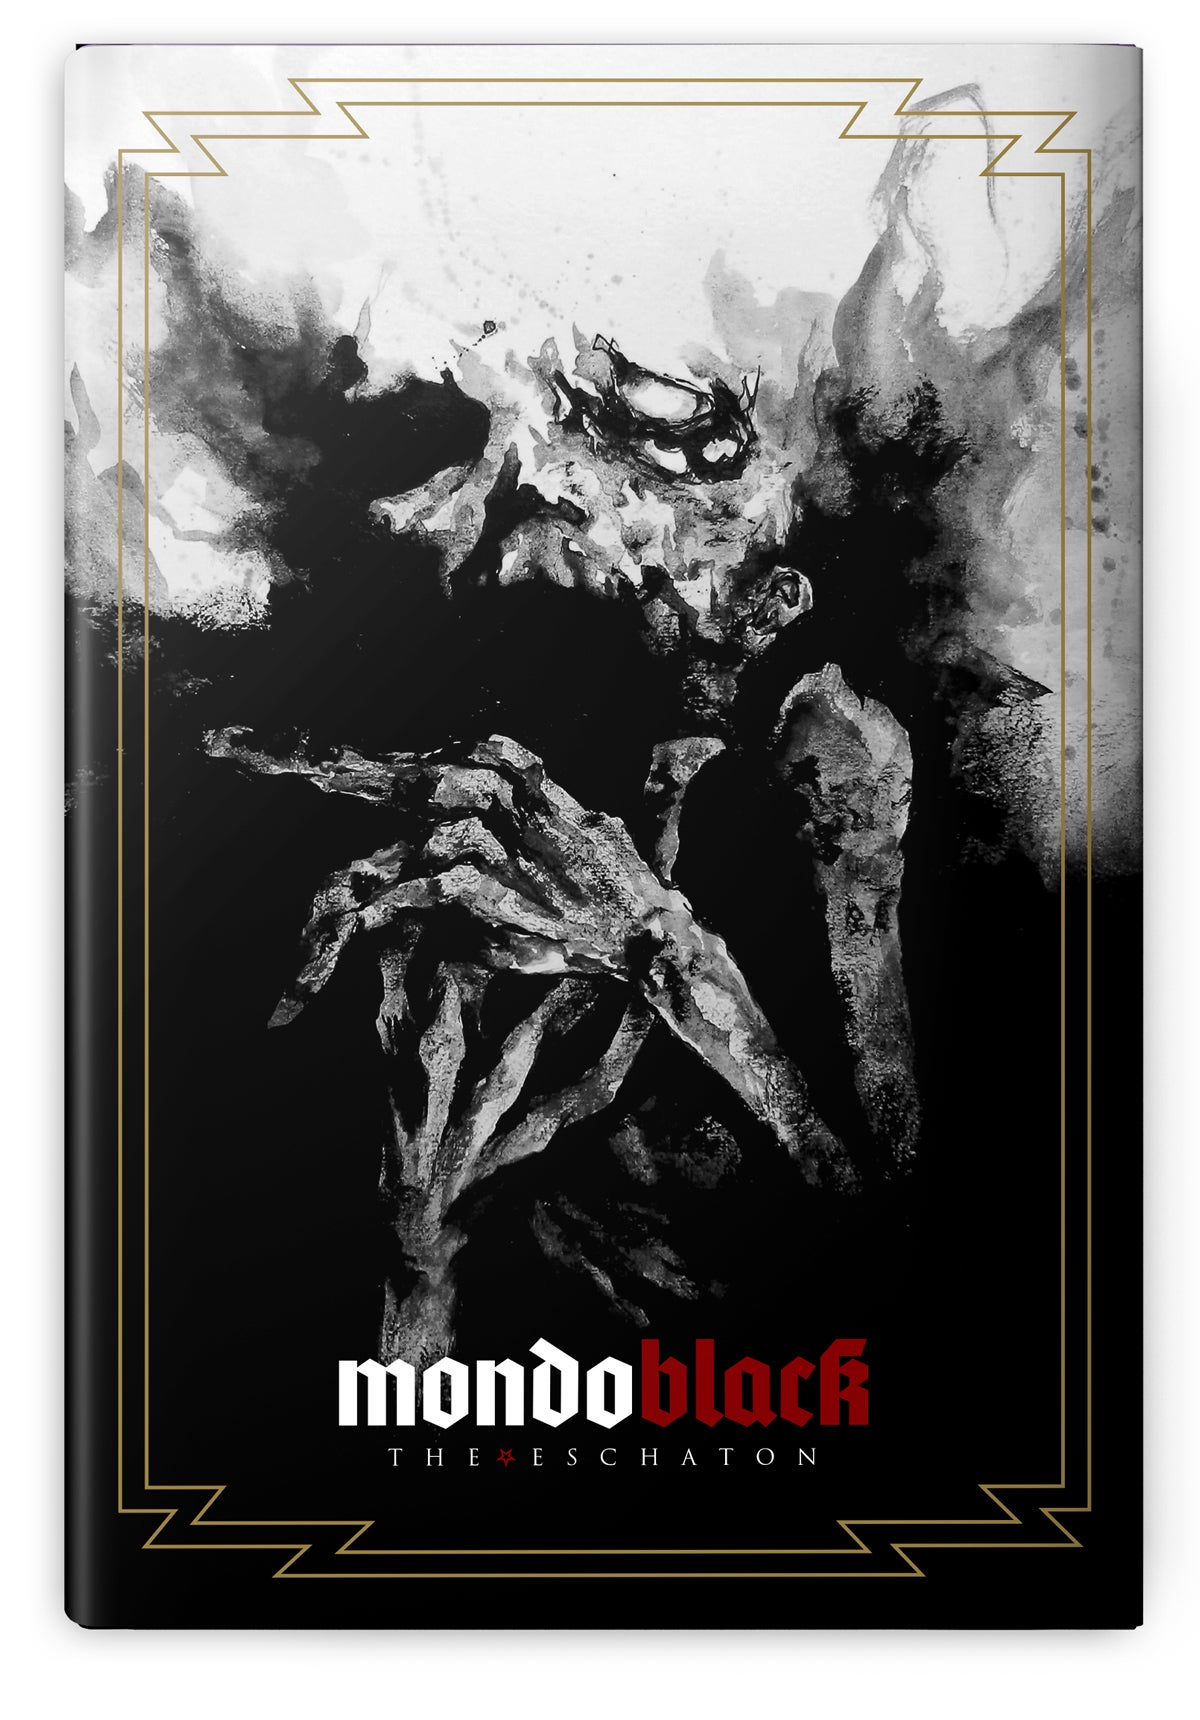 Image of Mondo Black, The Eschaton